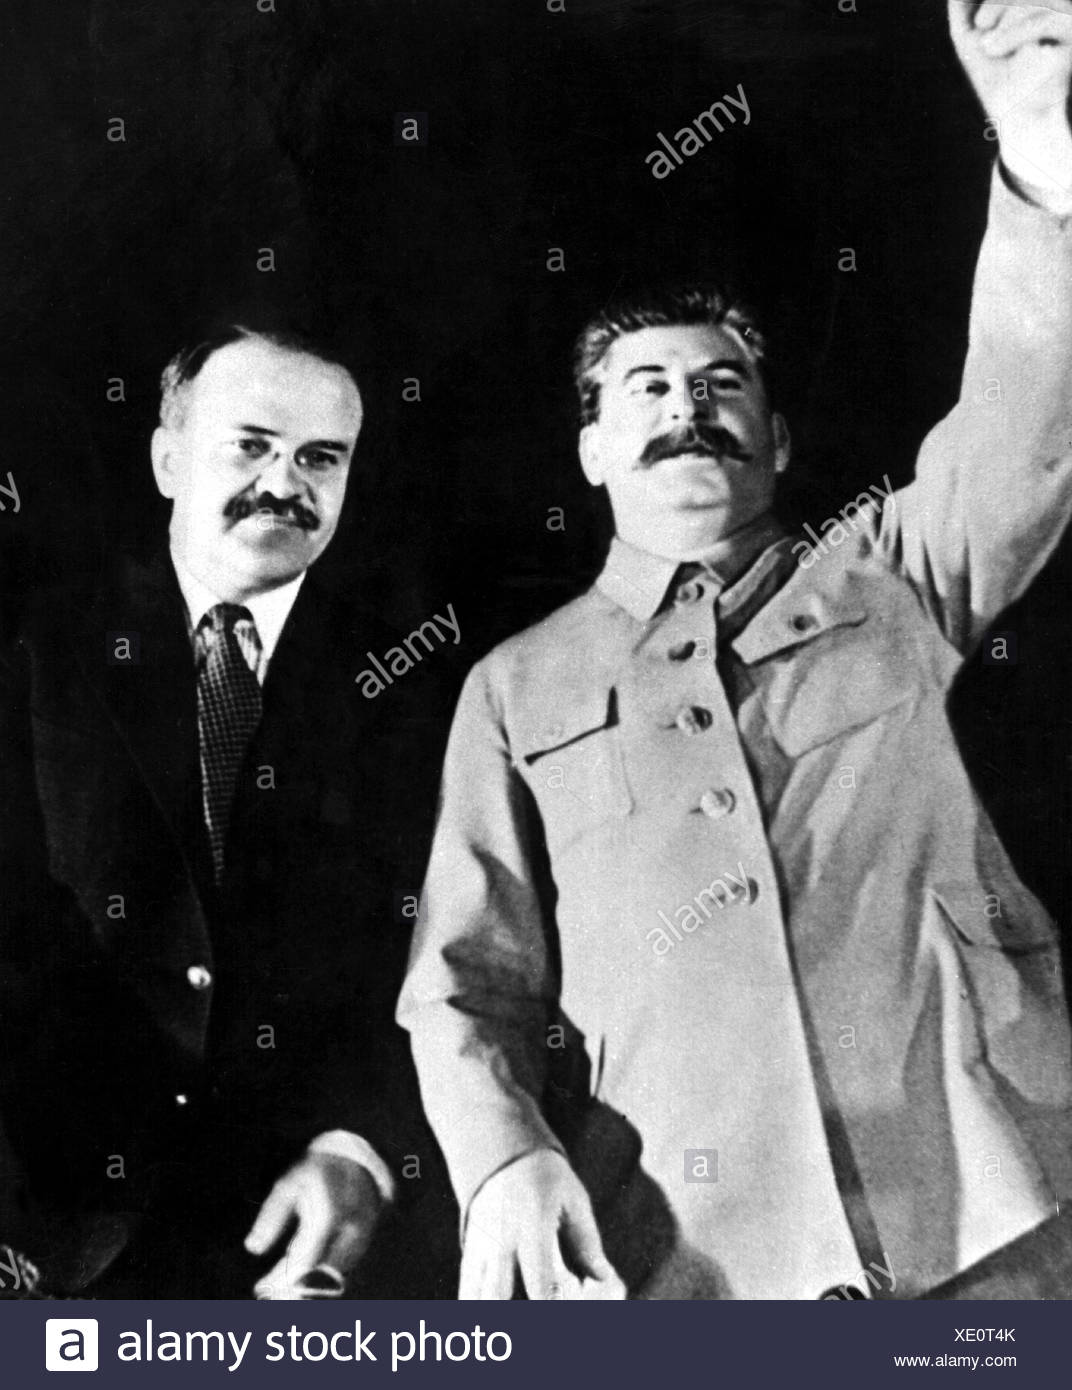 Stalin, Joseph Vissarionovich, 18.12.1879 - 5.3.1953, Soviet statesman, General Secretary of the Communist Party of the Soviet Union 1922 - 1953, with Vyacheslav Molotov, Chairman of the Council of People's Commissars, 1935, half length, Additional-Rights-Clearances-NA - Stock Image